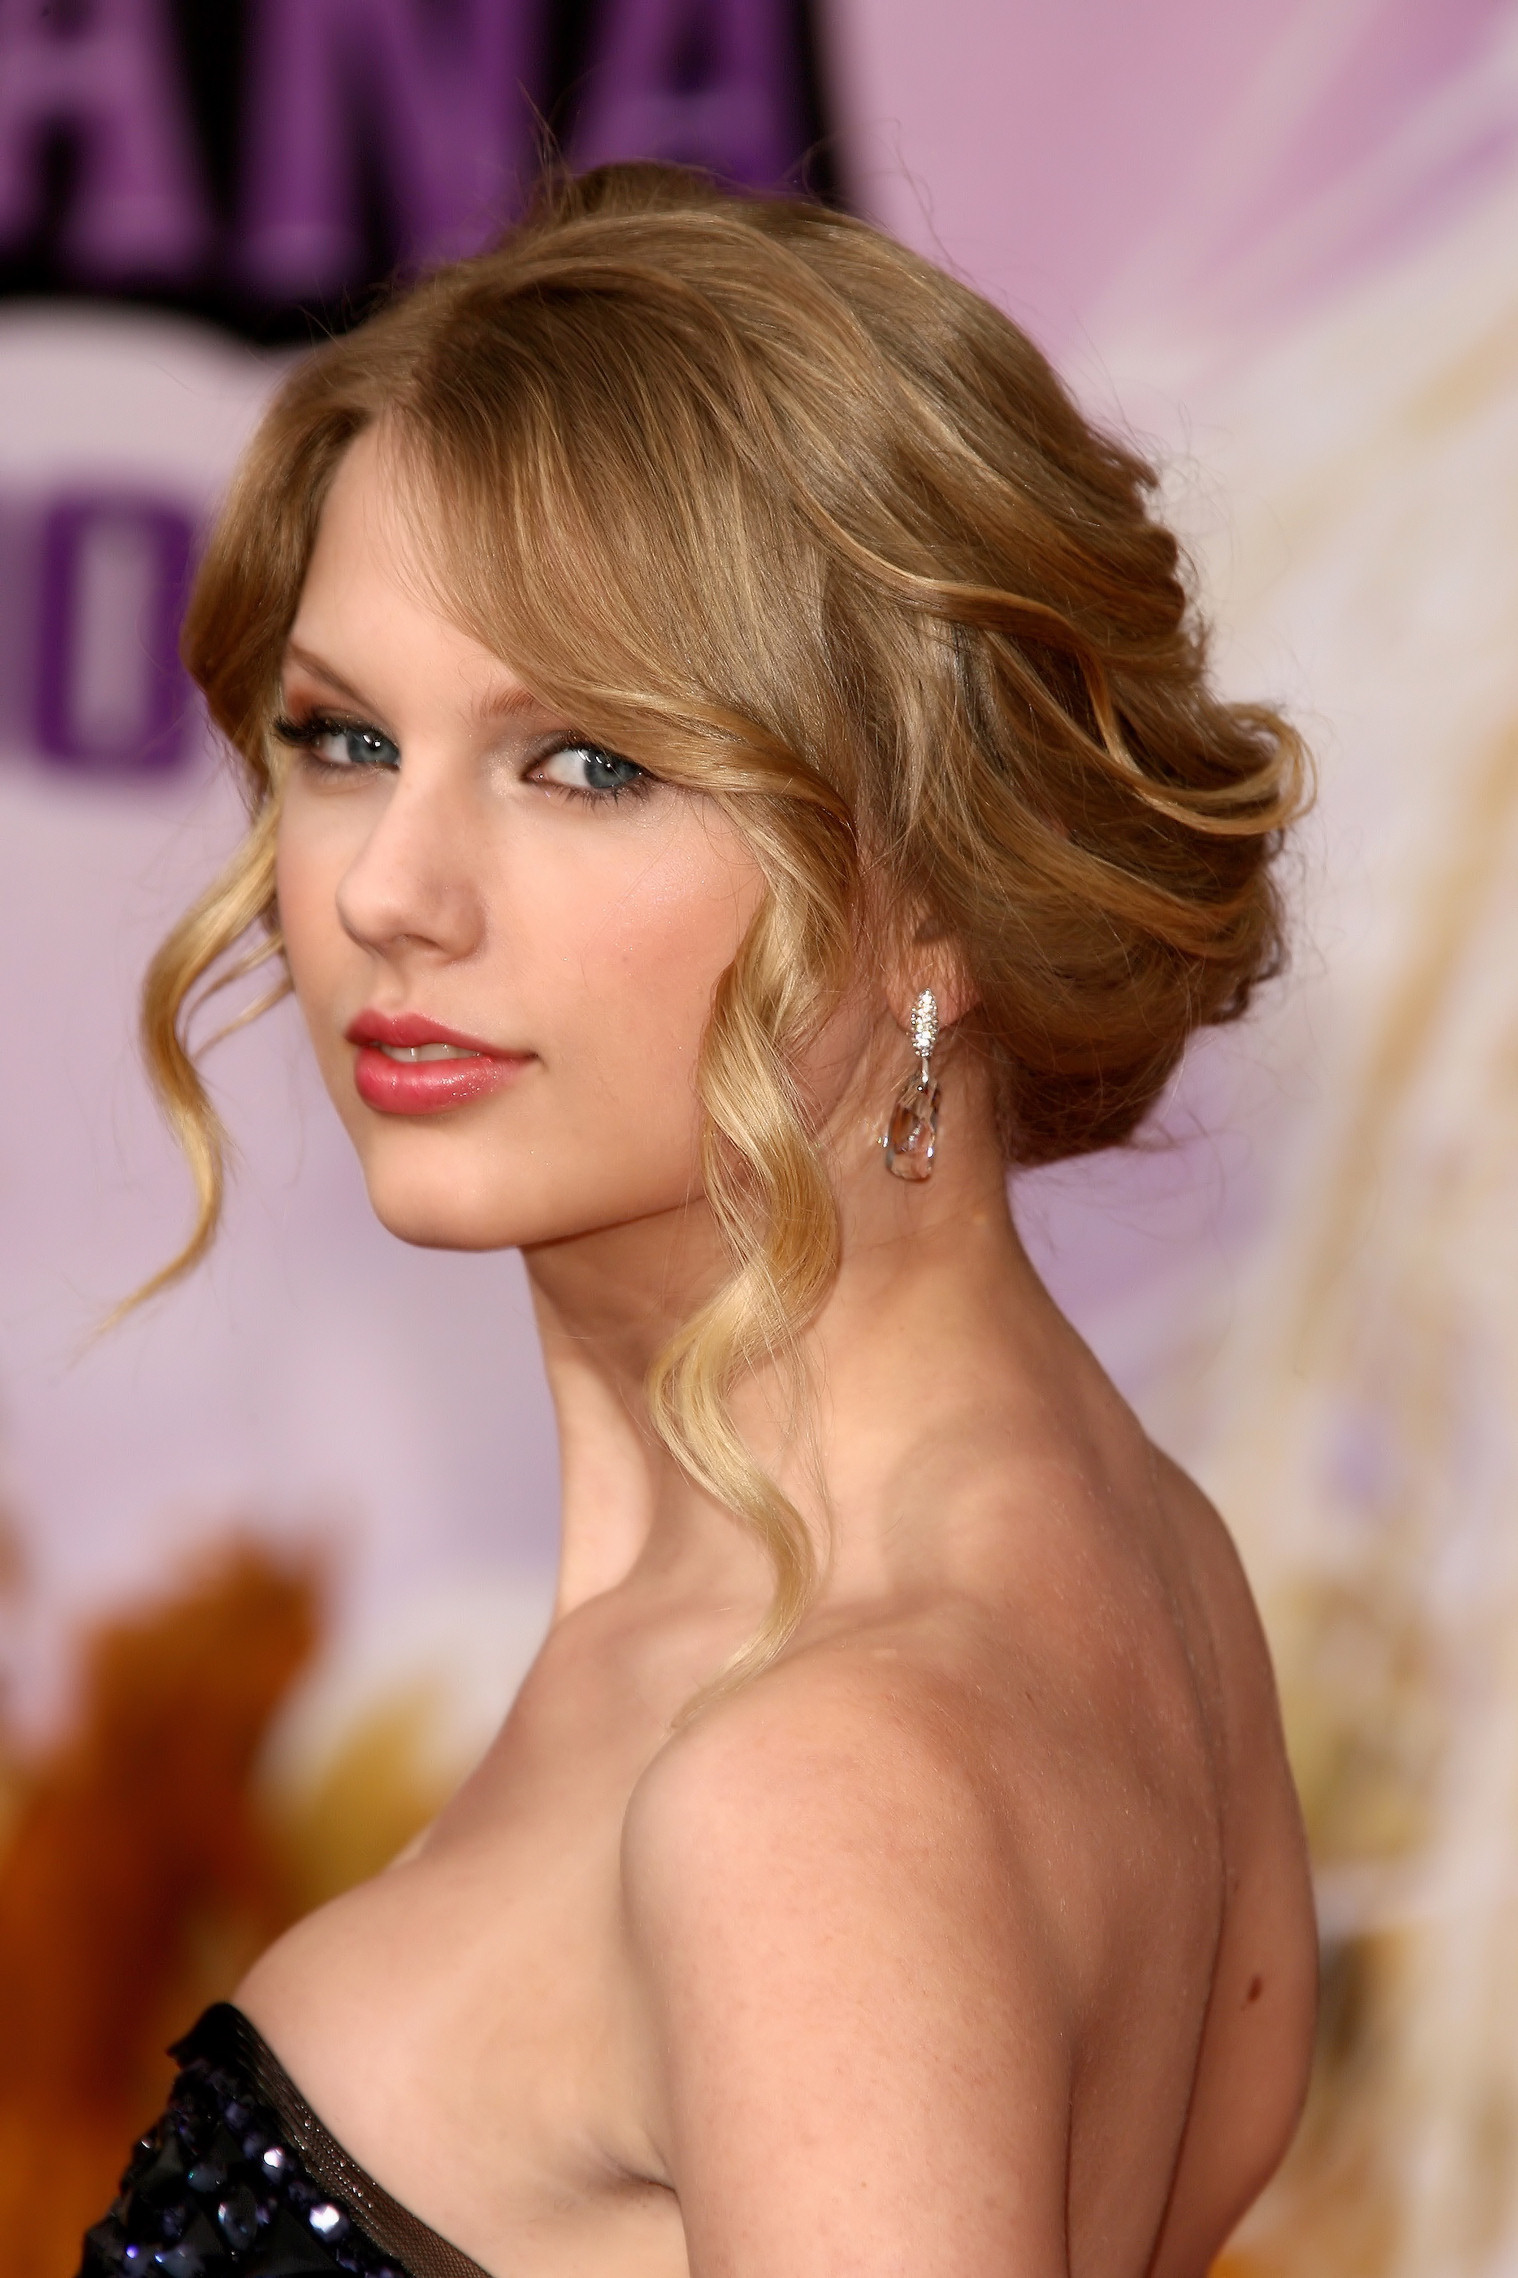 inappropriate celebrity wallpapers taylor swift - photo #3